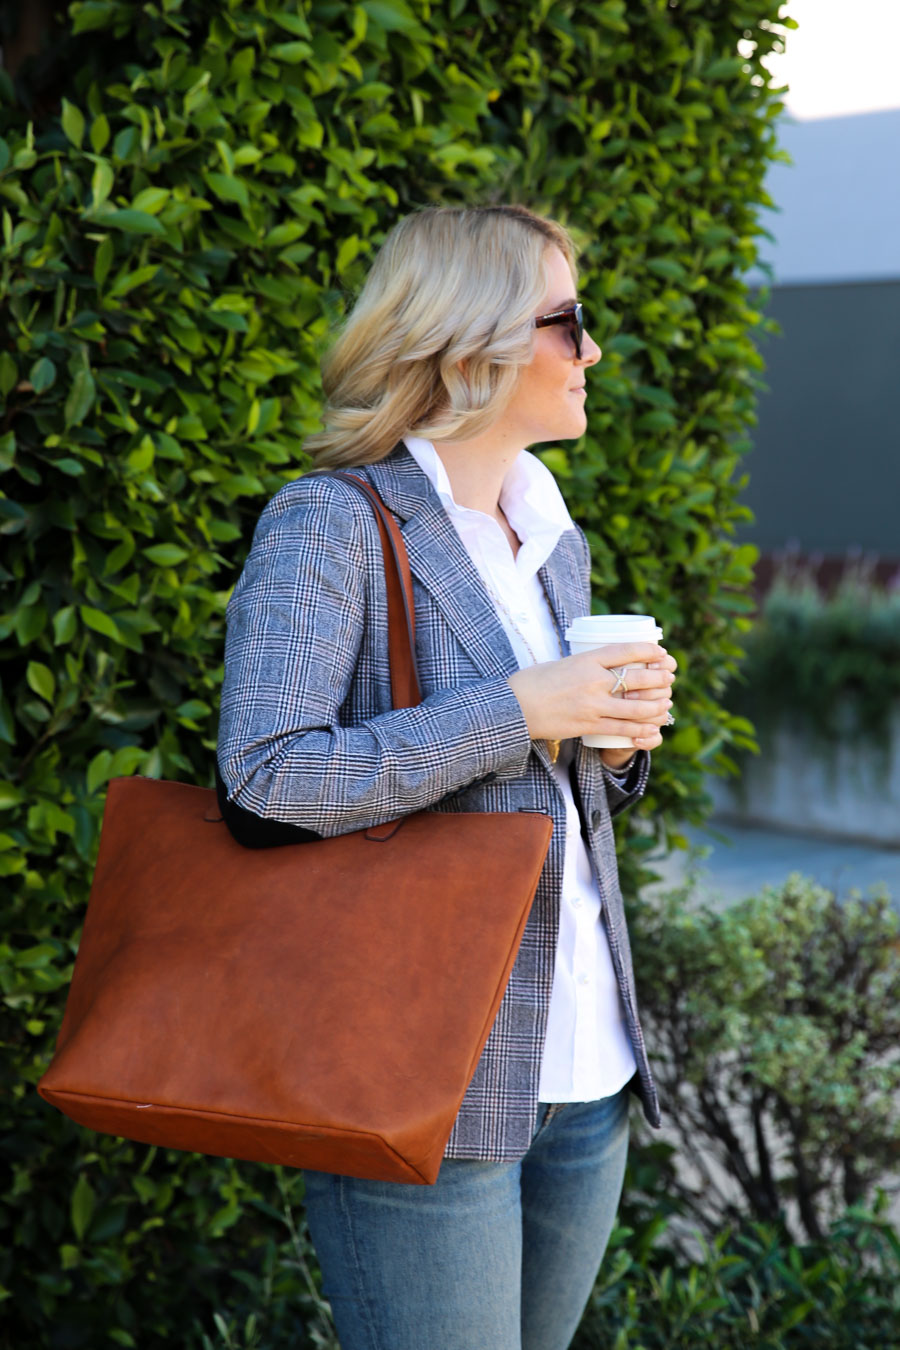 Monogram Leather Tote Bag - SLATE Collection Review